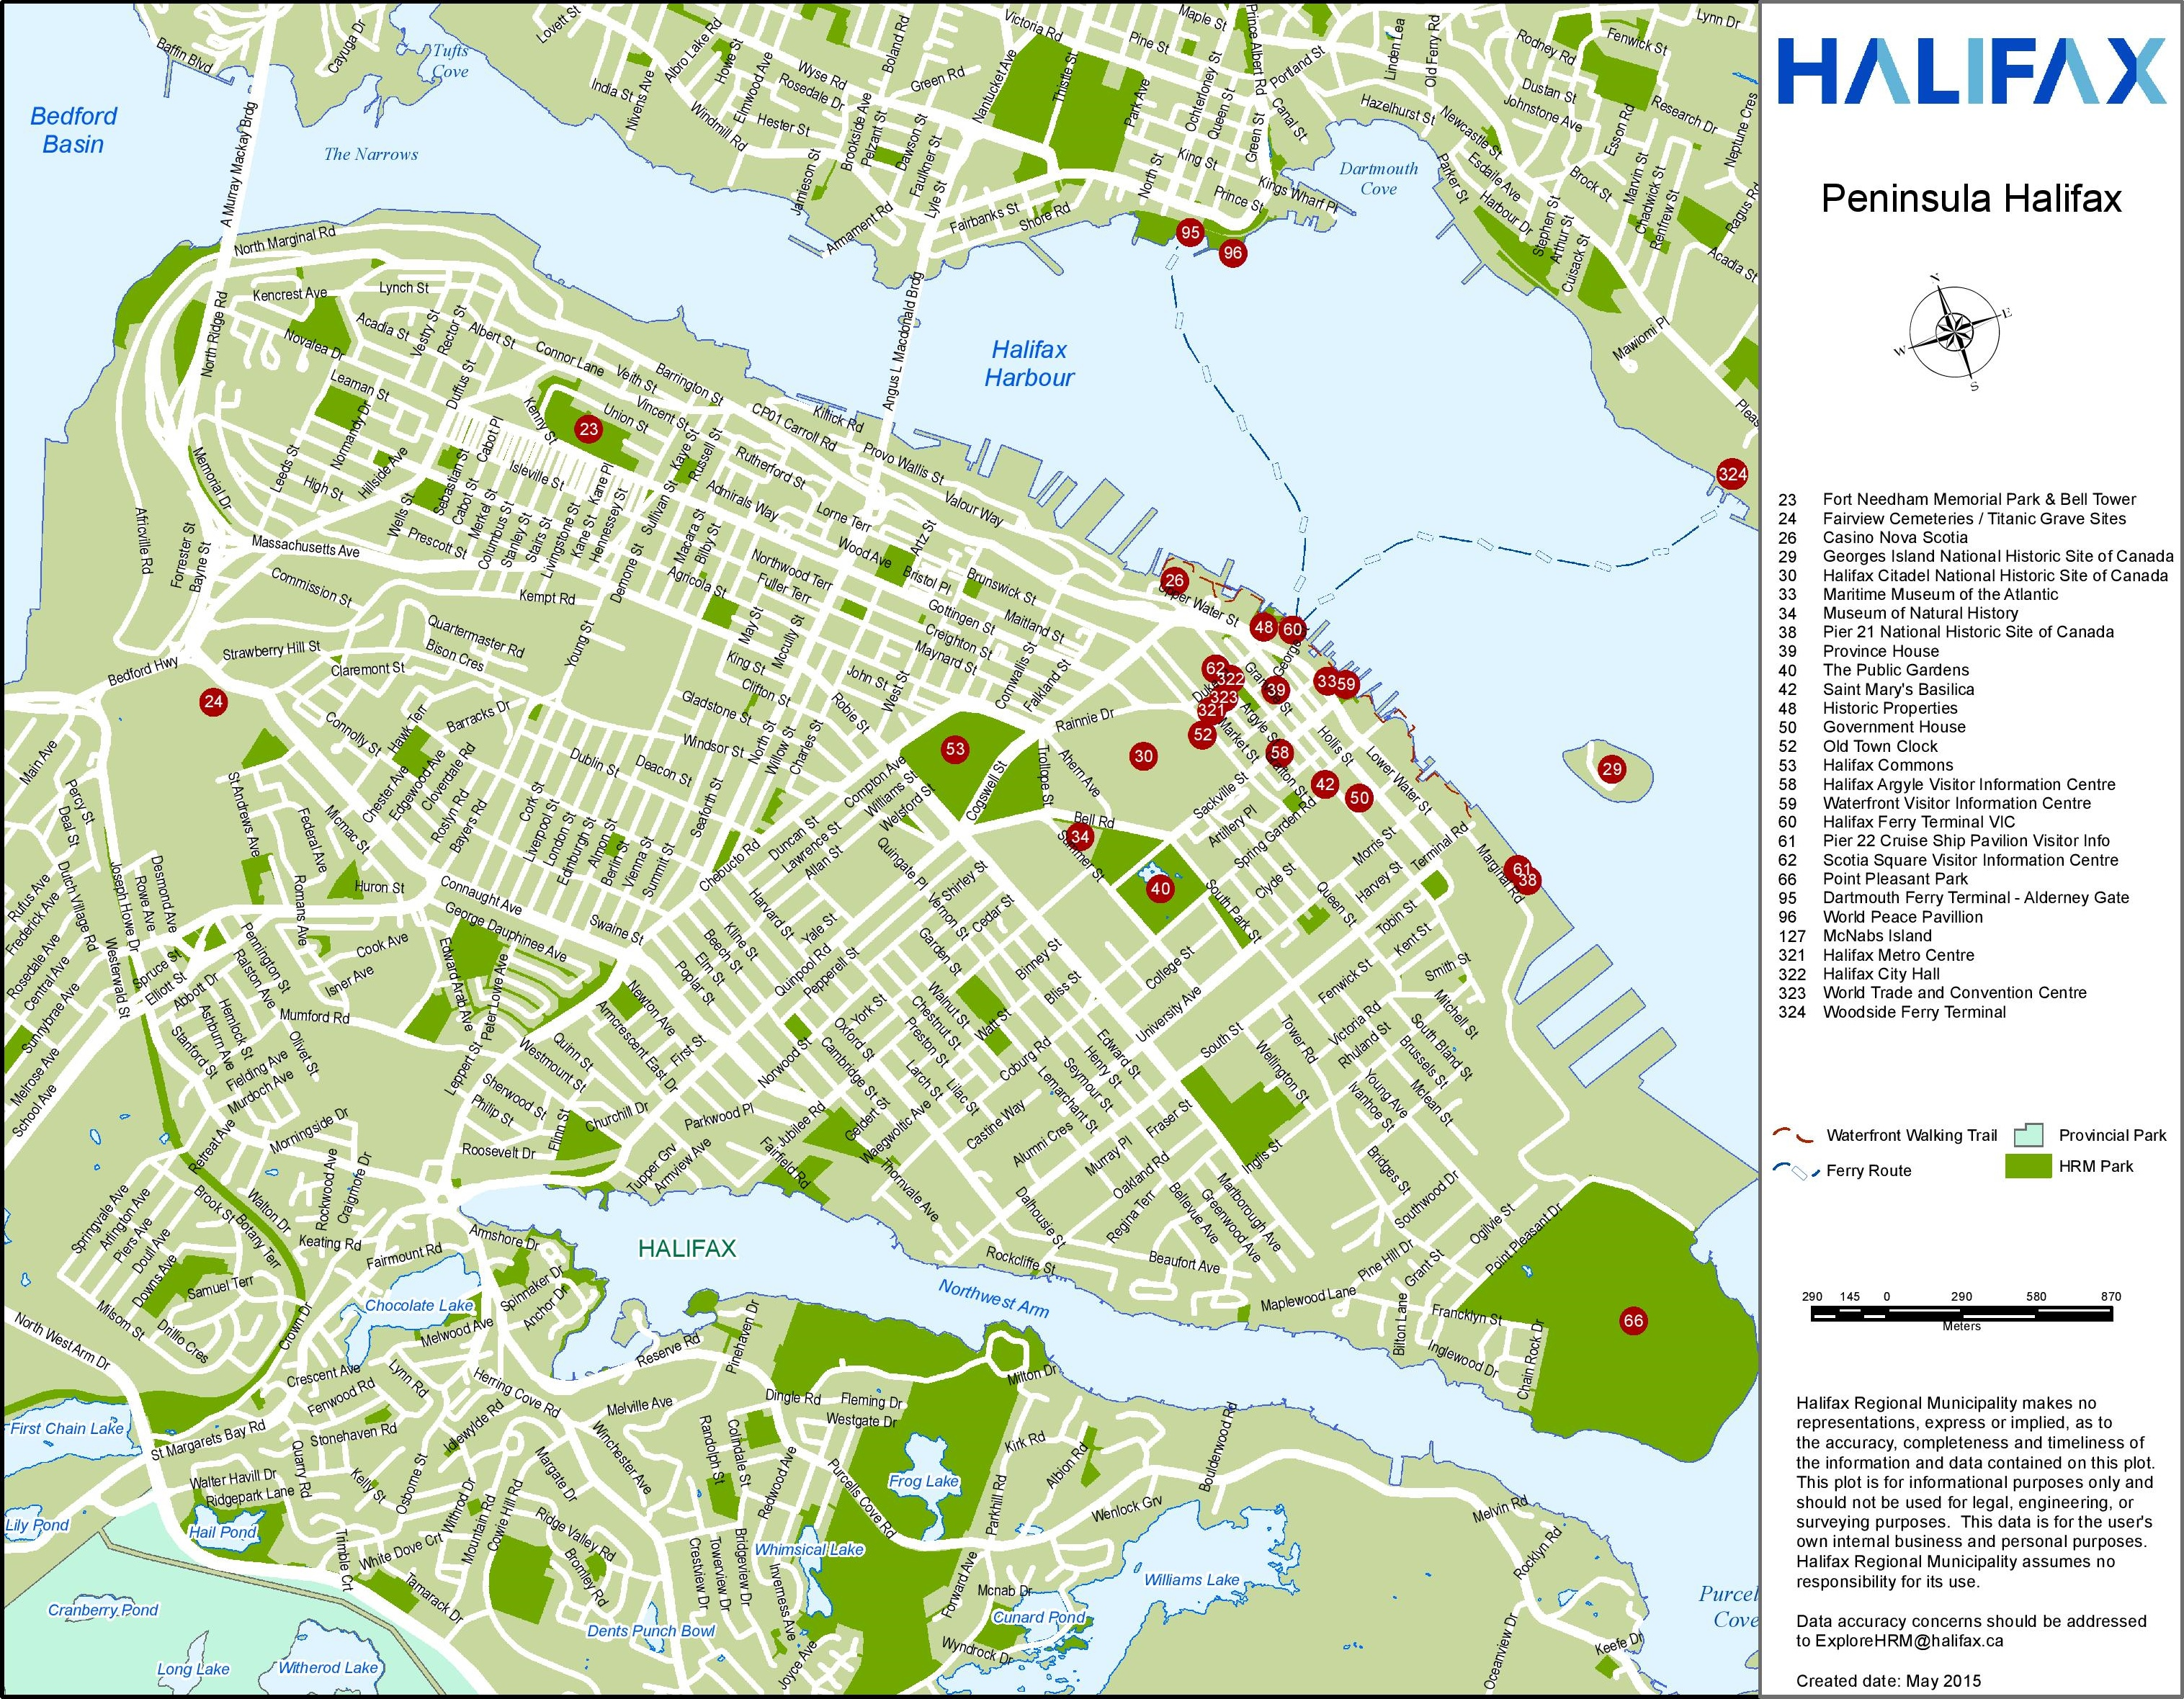 Map Of Halifax Ns Halifax tourist attractions map Map Of Halifax Ns